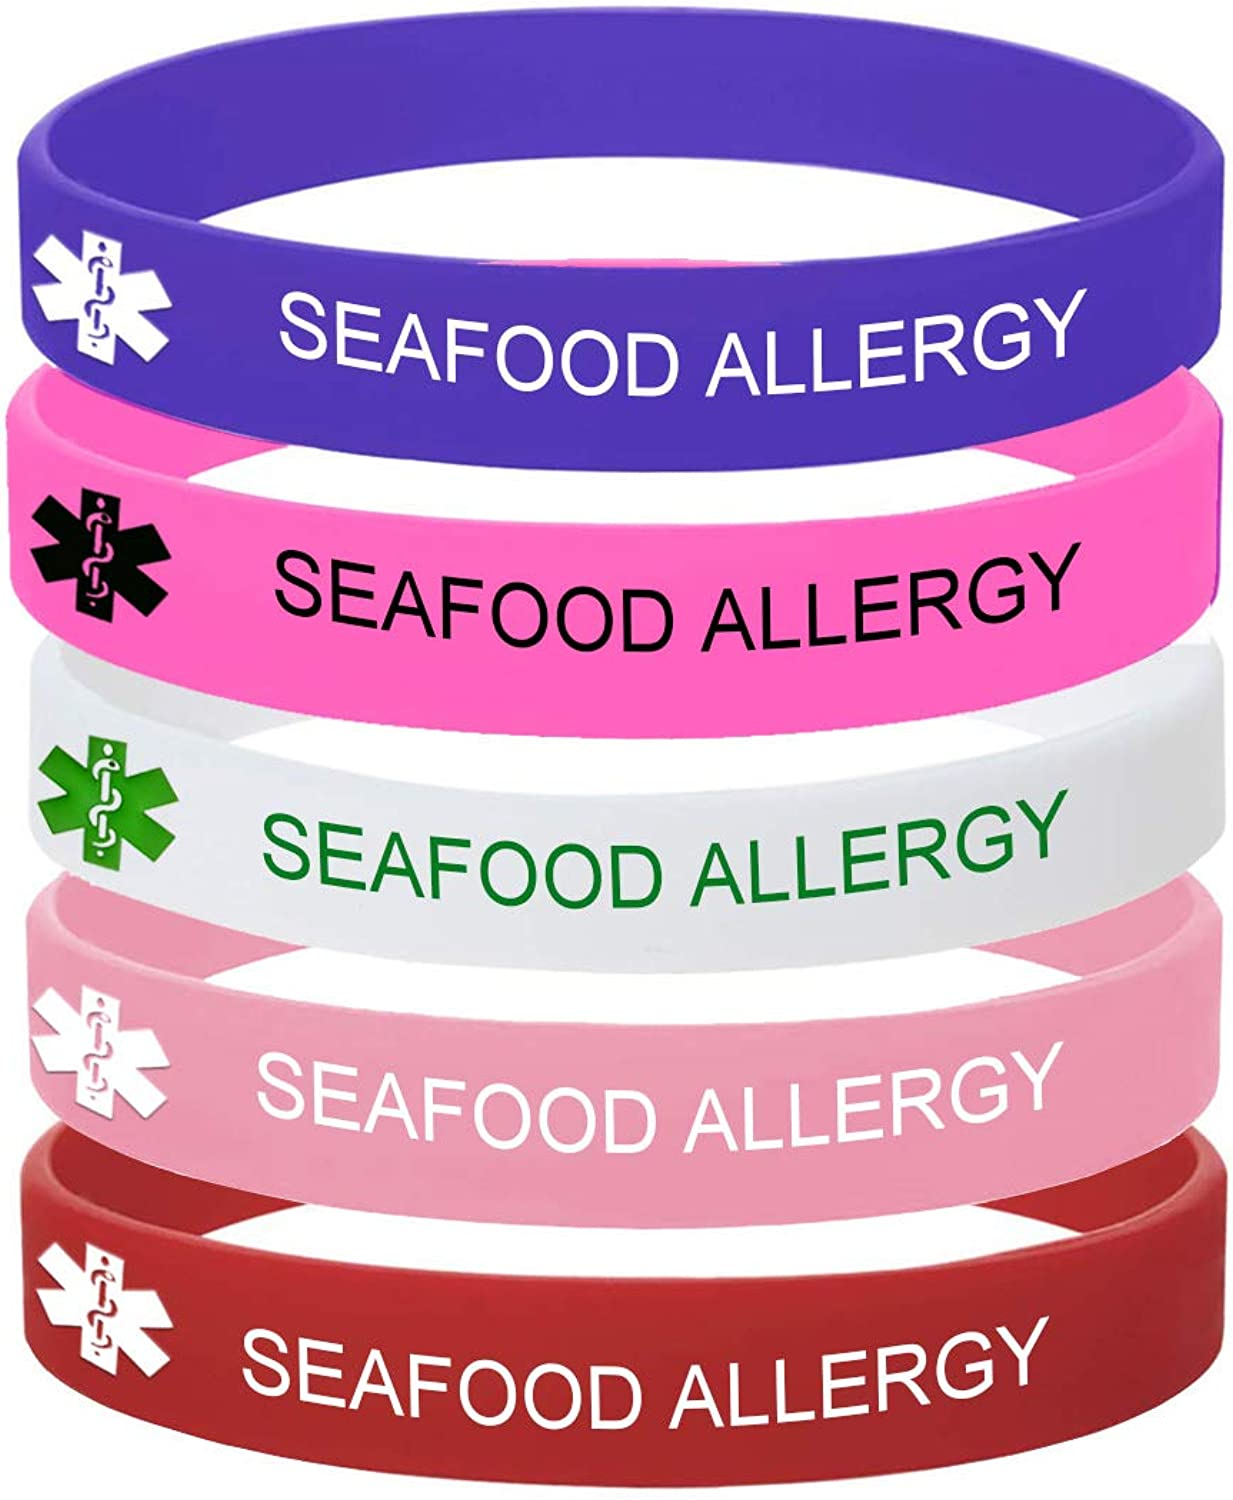 MZZJ 5 Color Pack-Personalized Engraved Medical Alert ID Jewelry Food Drug Allergy Bracelets,100% Silicone Rubber ID Survivor Bracelet Band,Emergency Contact Bracelet,Diabetes Bracelet,5.5